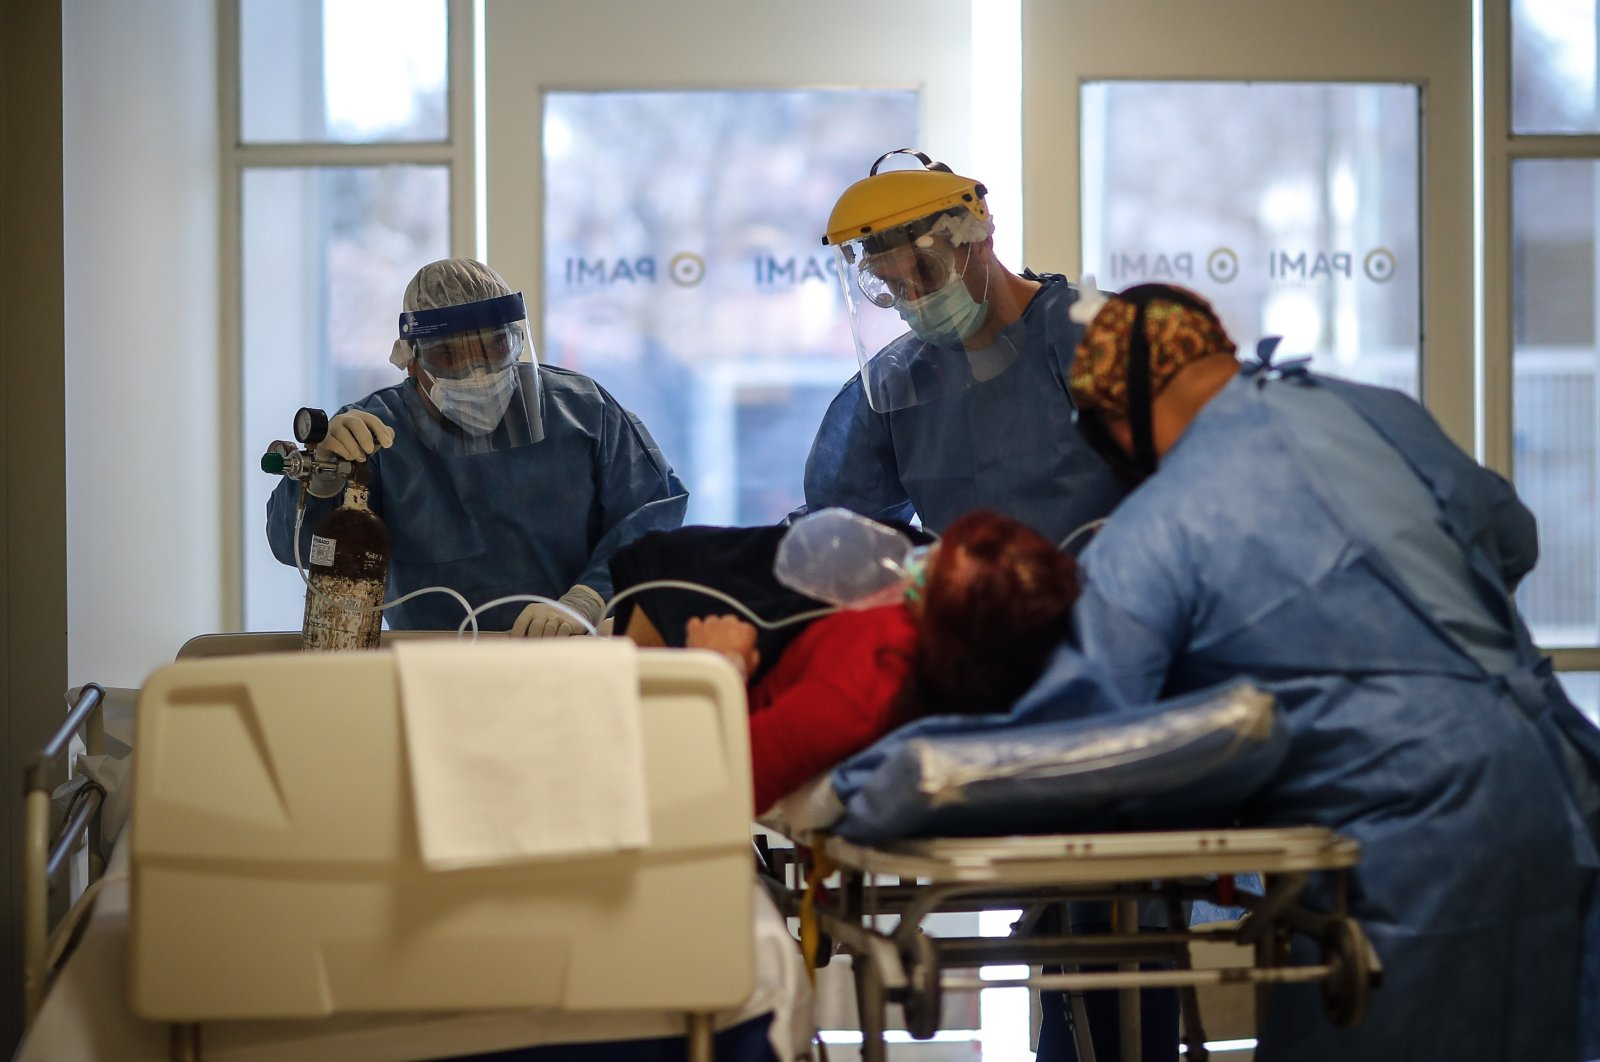 Medical personnel transport a COVID-19 patient at the Bicentennial Hospital of Esteban Echeverria in Buenos Aires, Argentina, on 30 July 2020 (EPA Photo)